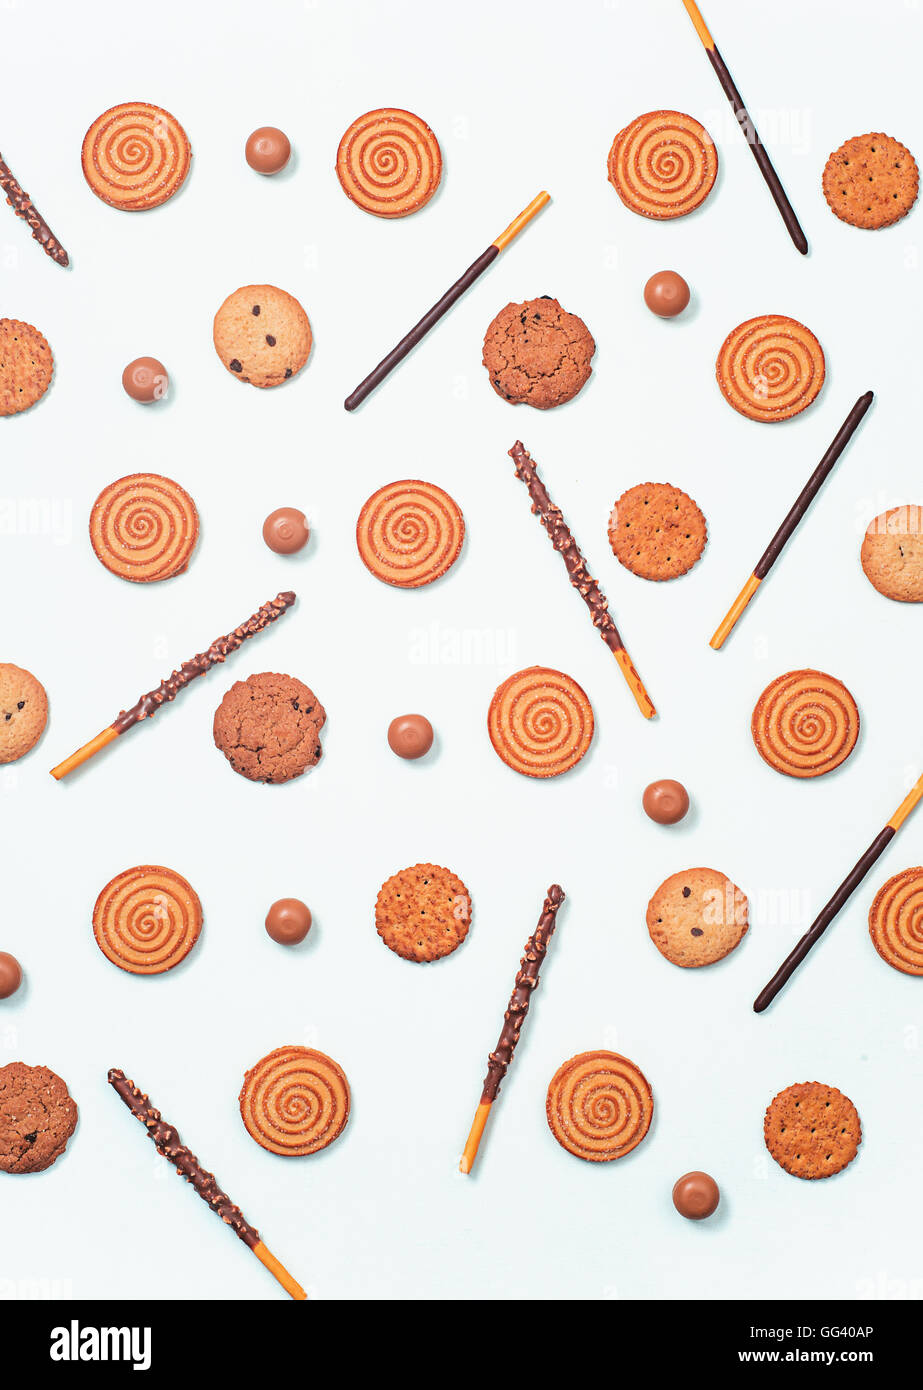 Cookie pattern - Stock Image